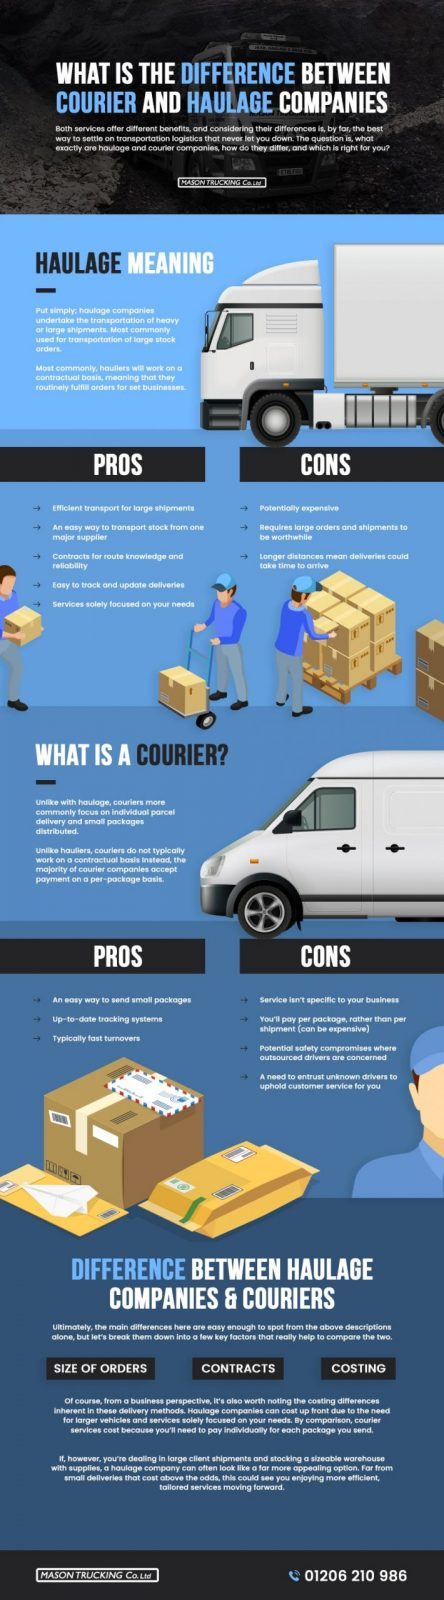 difference haulage courier